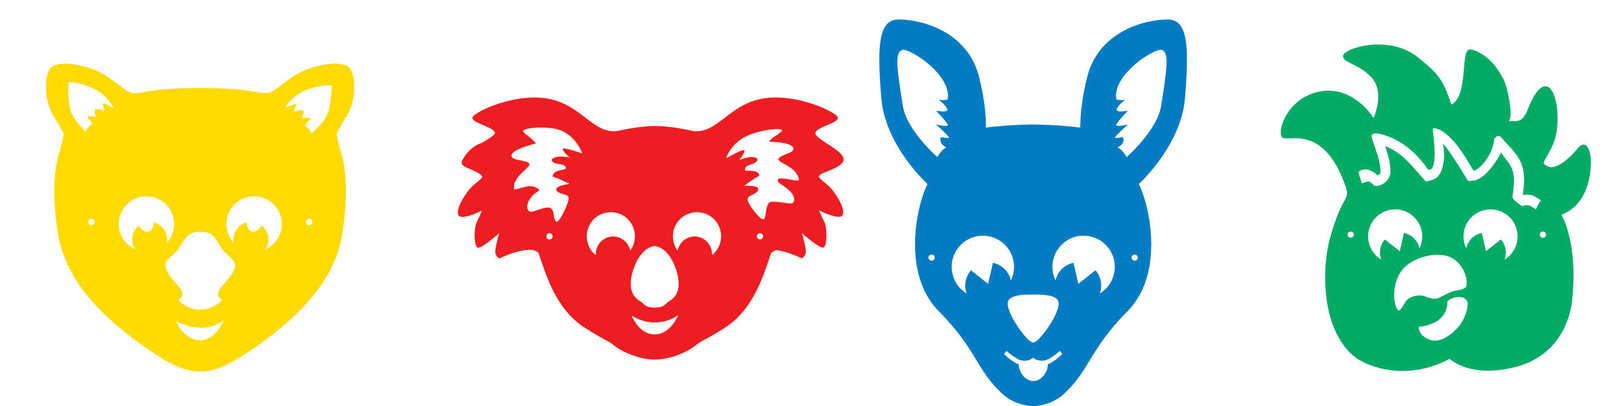 1600x406 Mask Clipart Kangaroo Free Collection Download And Share Mask